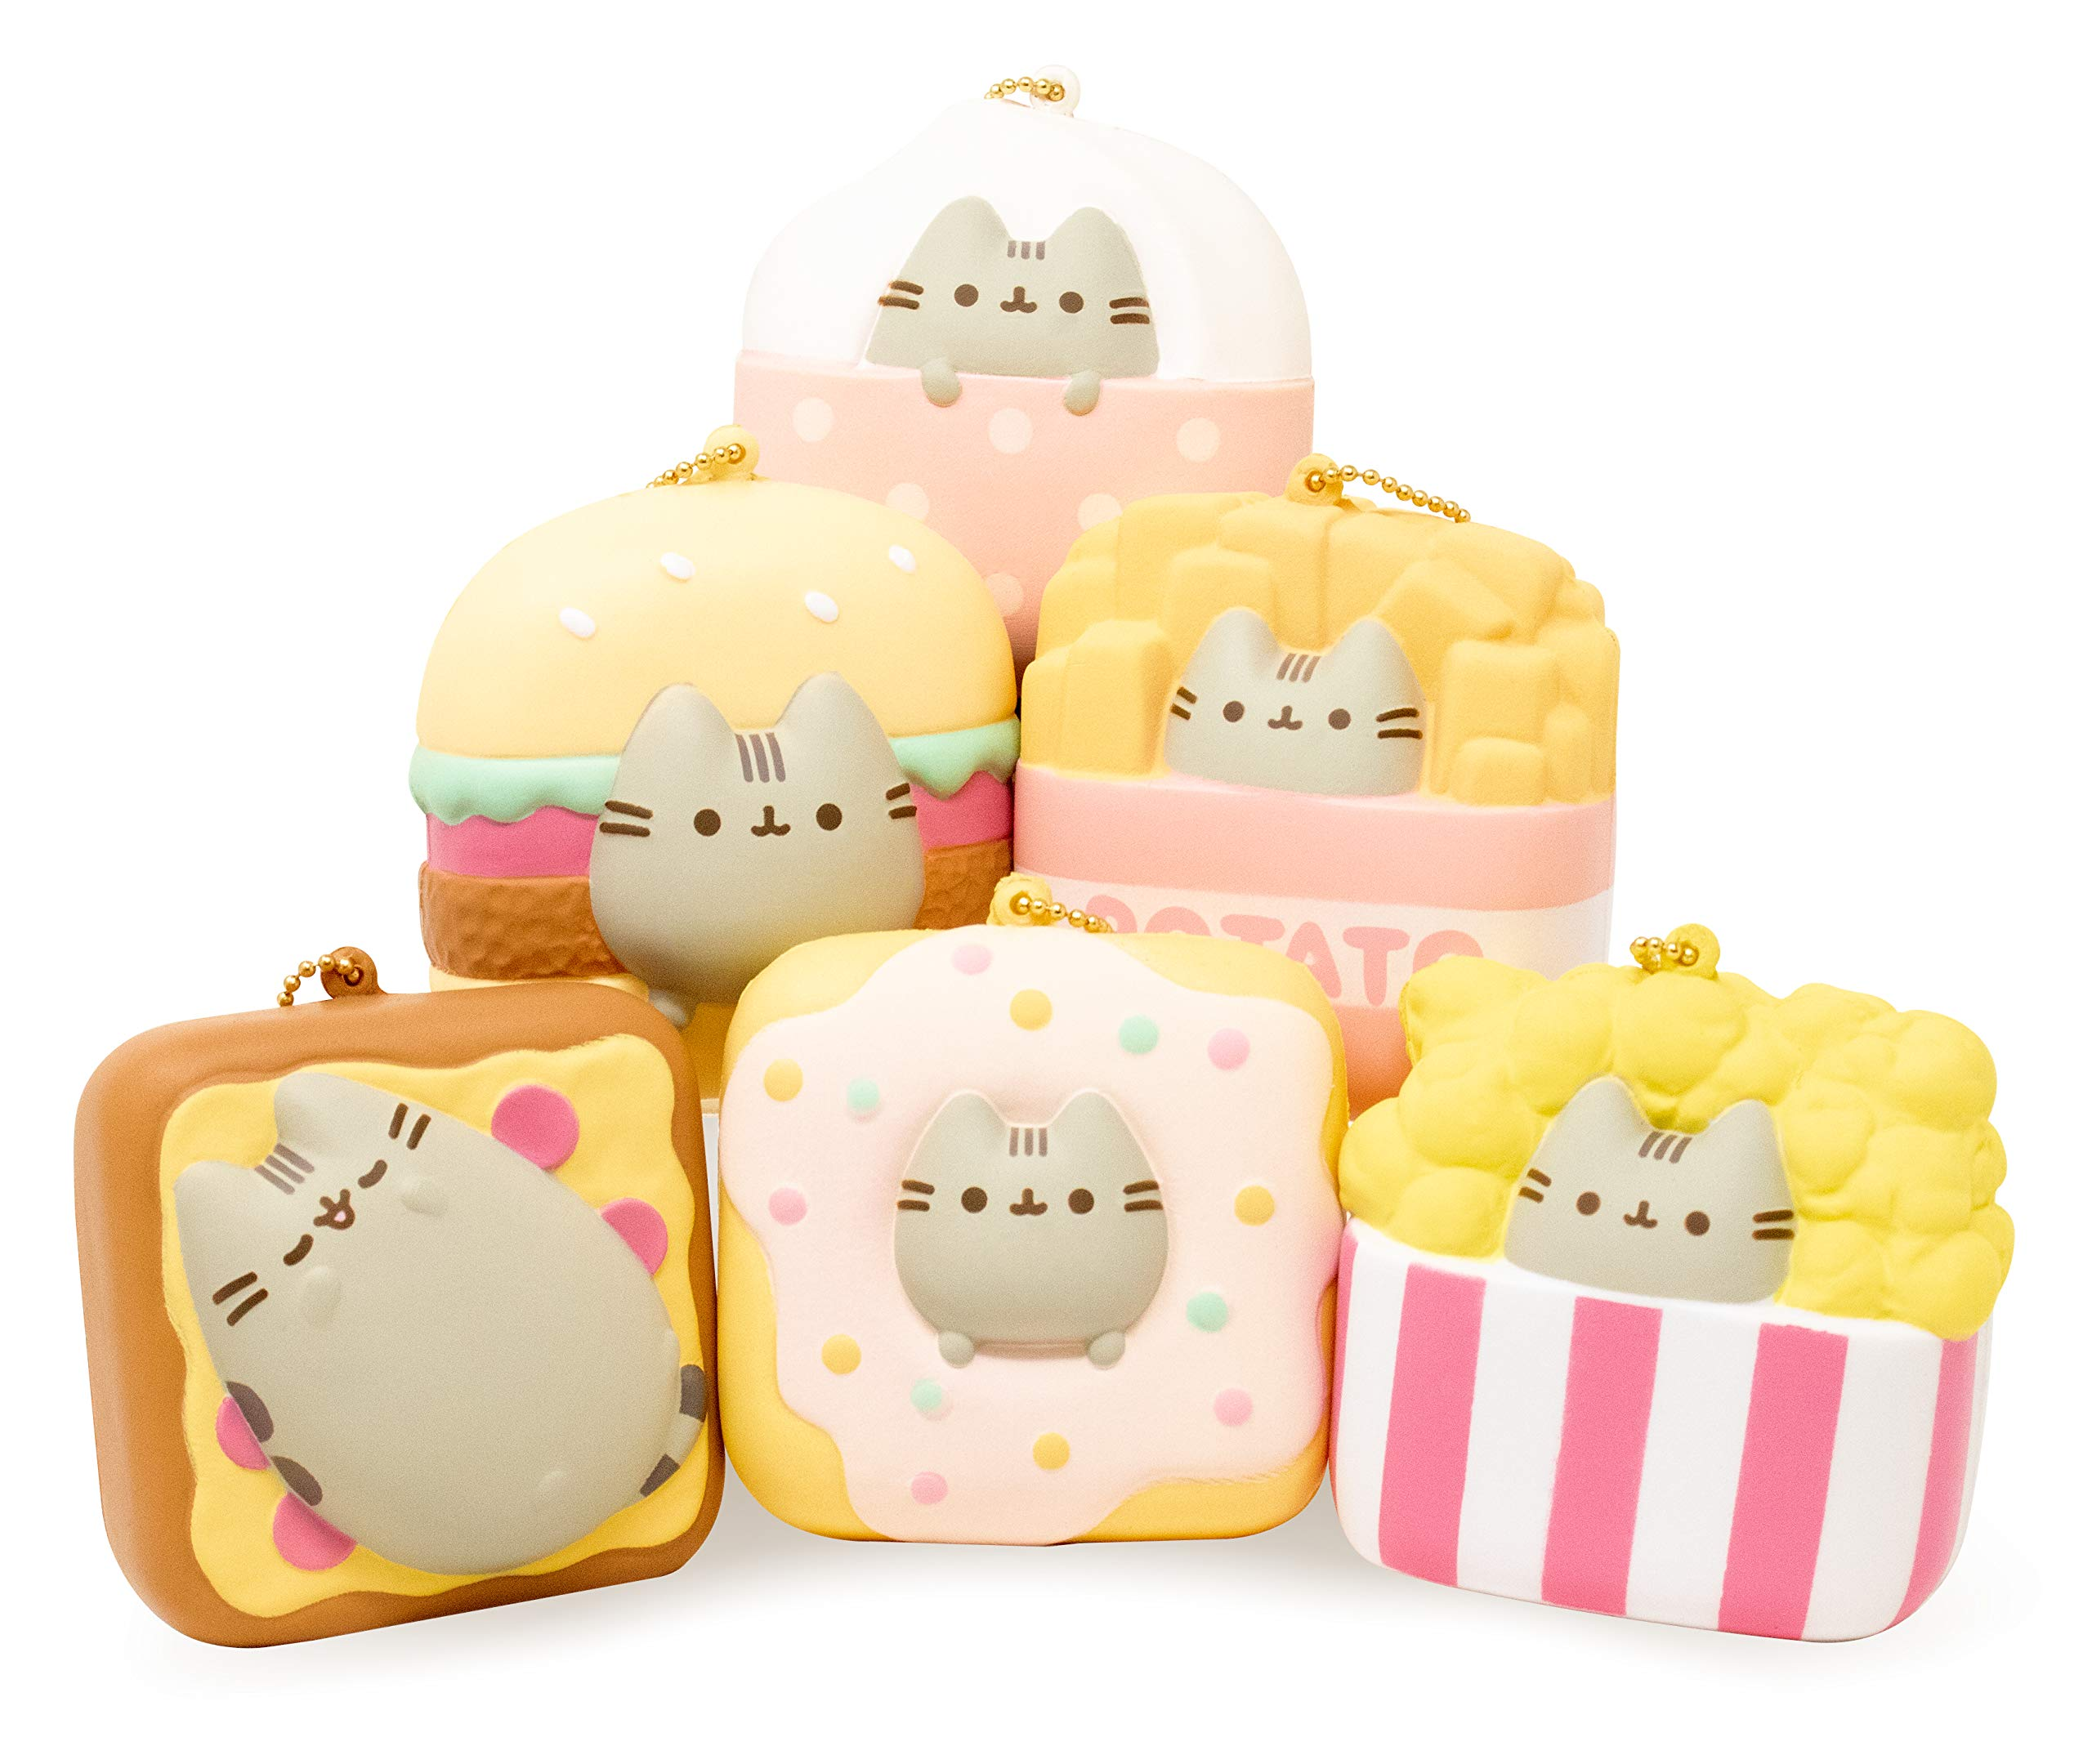 Hamee Slow Rising Squishy [Pusheen Cat Collection] Square Edition [6 Pc. Pusheen Cat Square Set] Ball Chain Adorable Soft Stress Relief, Pizza/Hamburger/Fries/Donut/Popcorn/Ice Cream